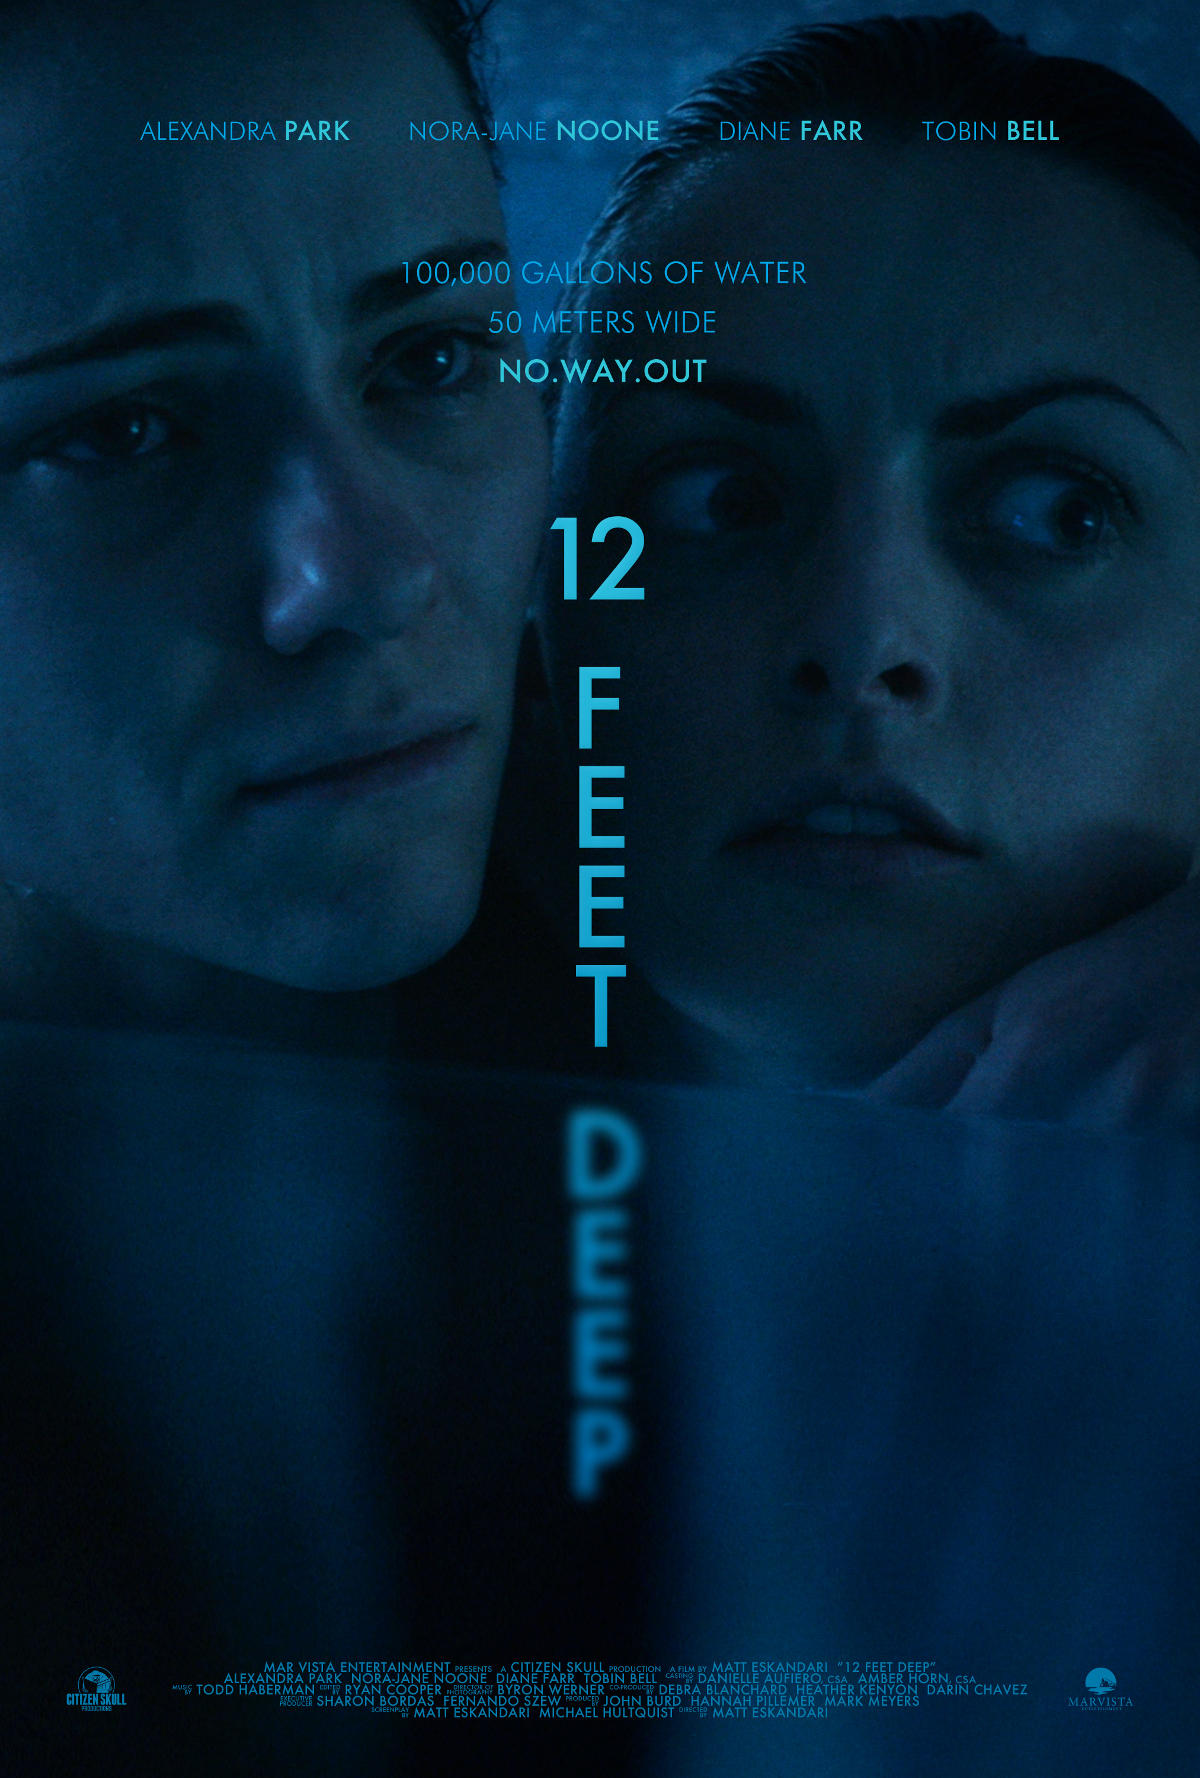 Below, we have the official trailer for 12 Feet Deep, as well as two alternate posters for the film and several behind-the-scenes images.